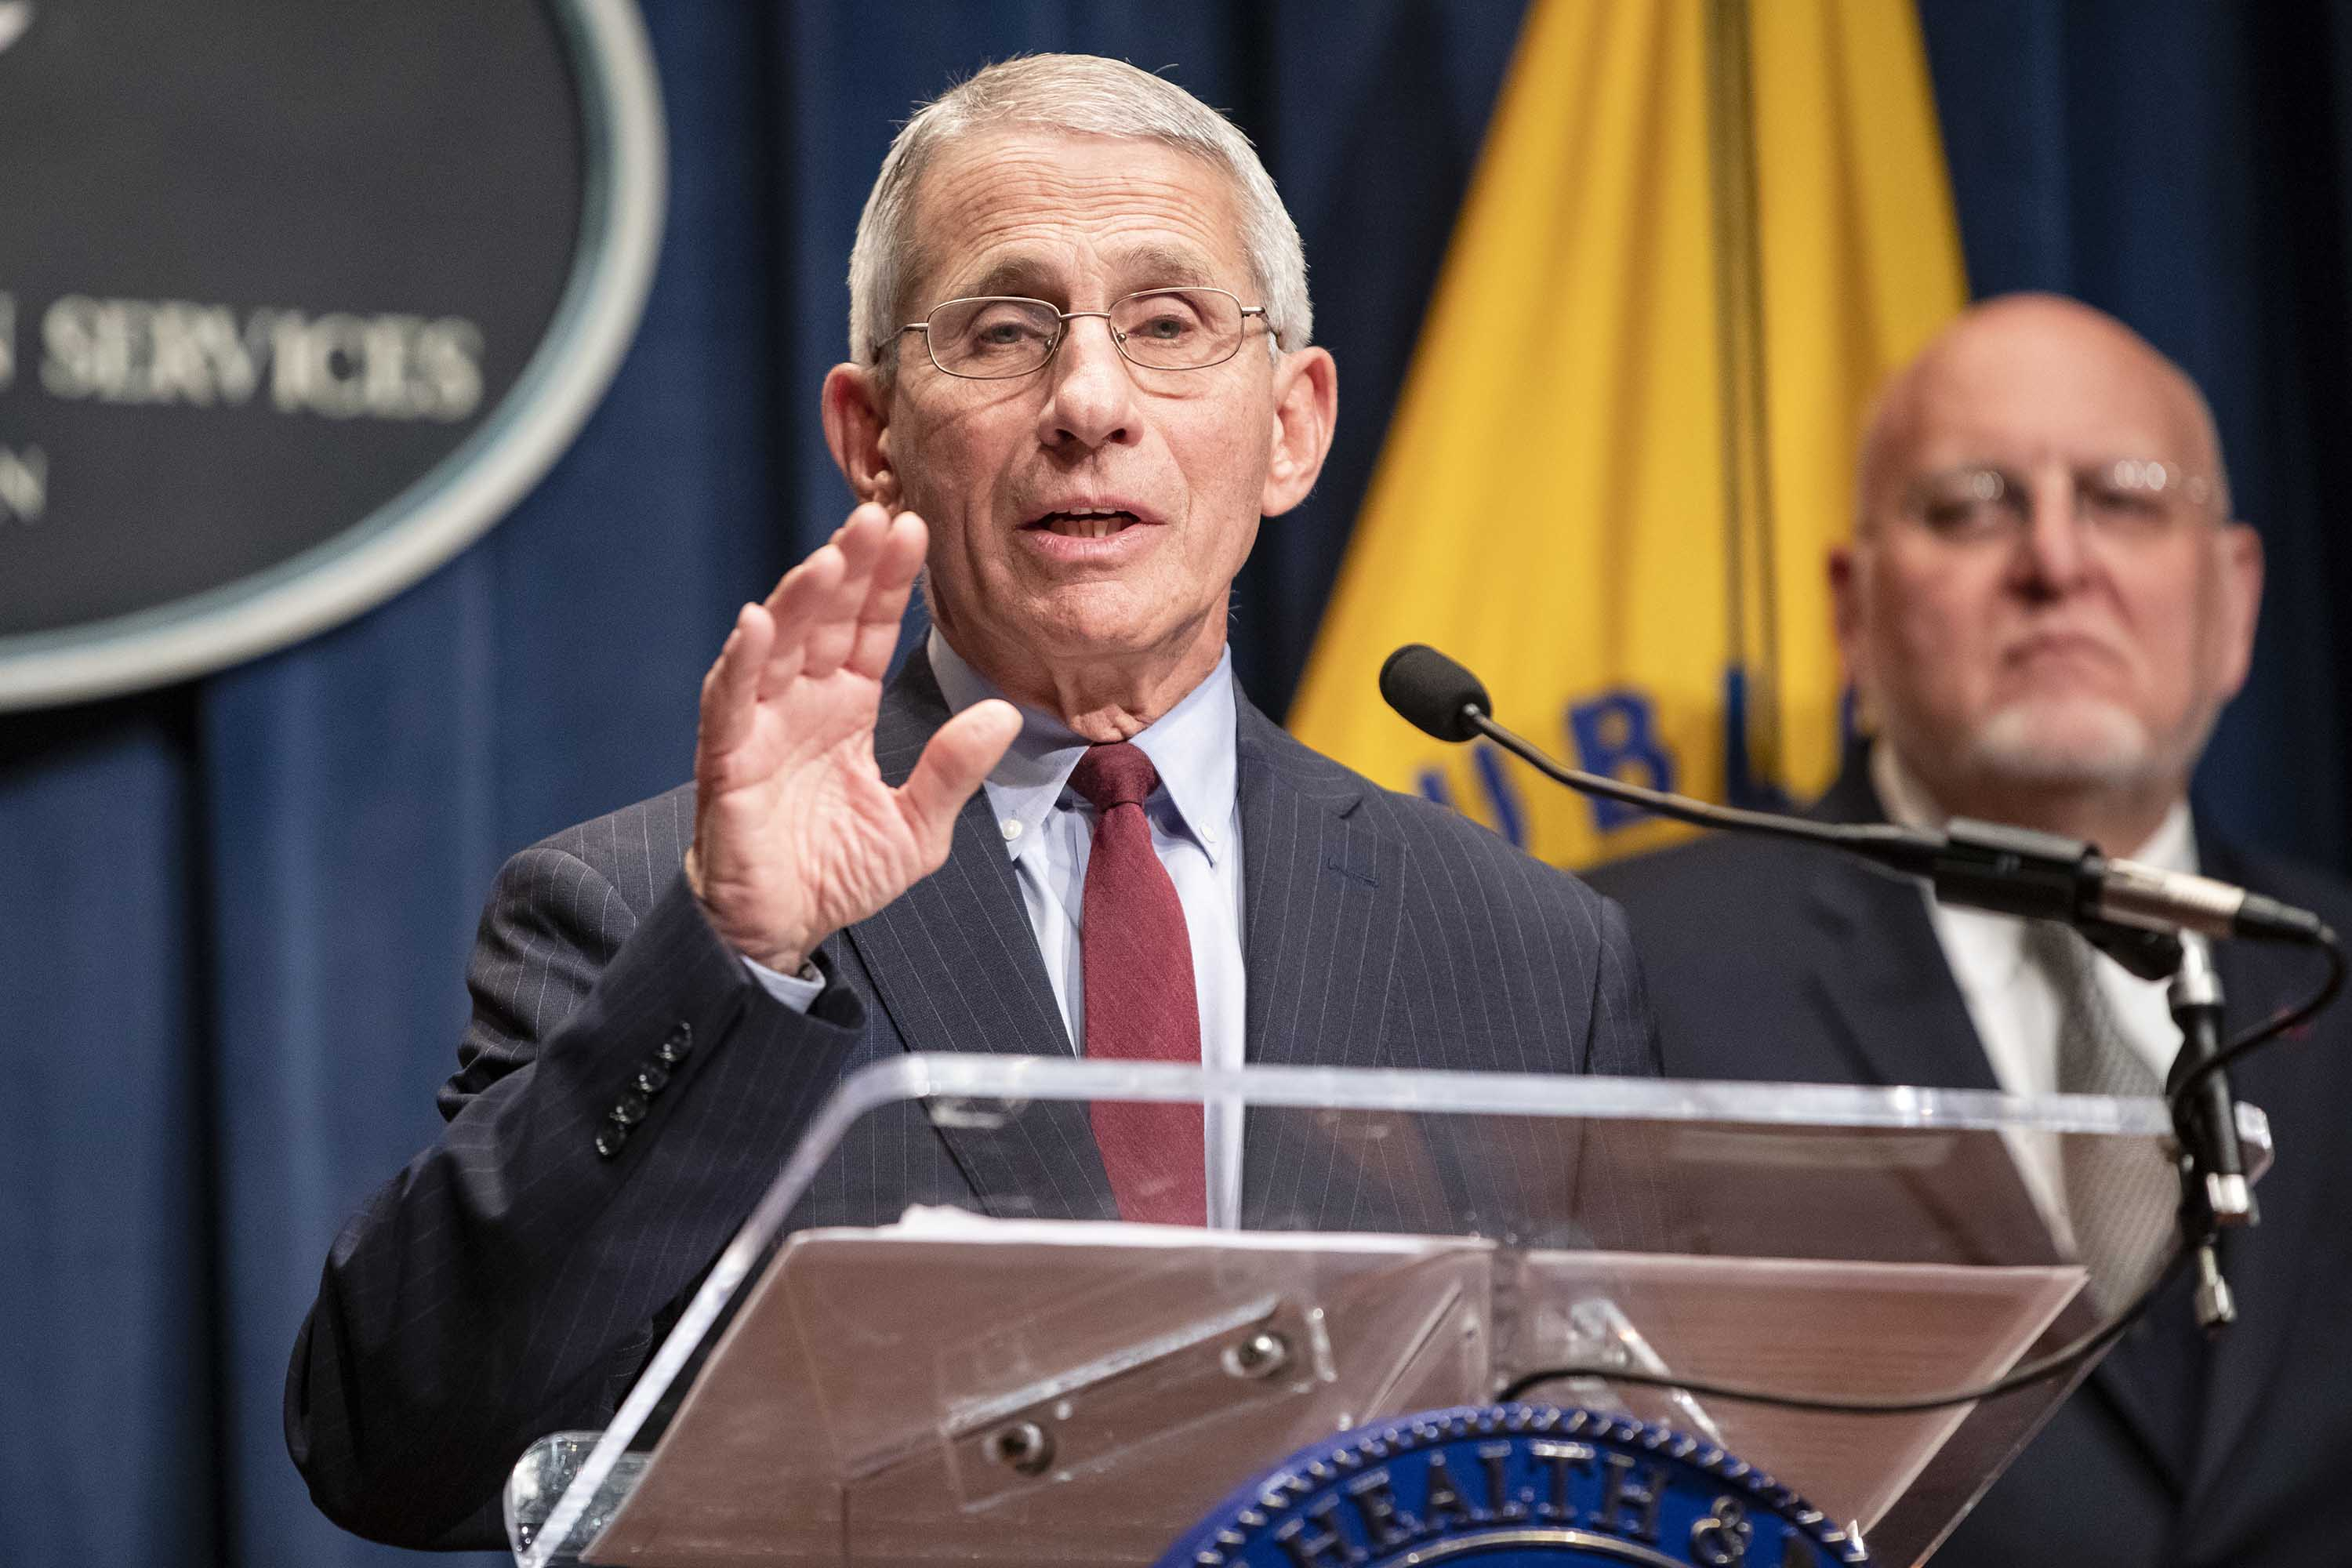 National Institute of Allergy and Infectious Diseases Director Anthony Fauci speaks during a press conference at the Department of Health and Human Services on the coordinated public health response to the coronavirus on January 28 in Washington, DC.